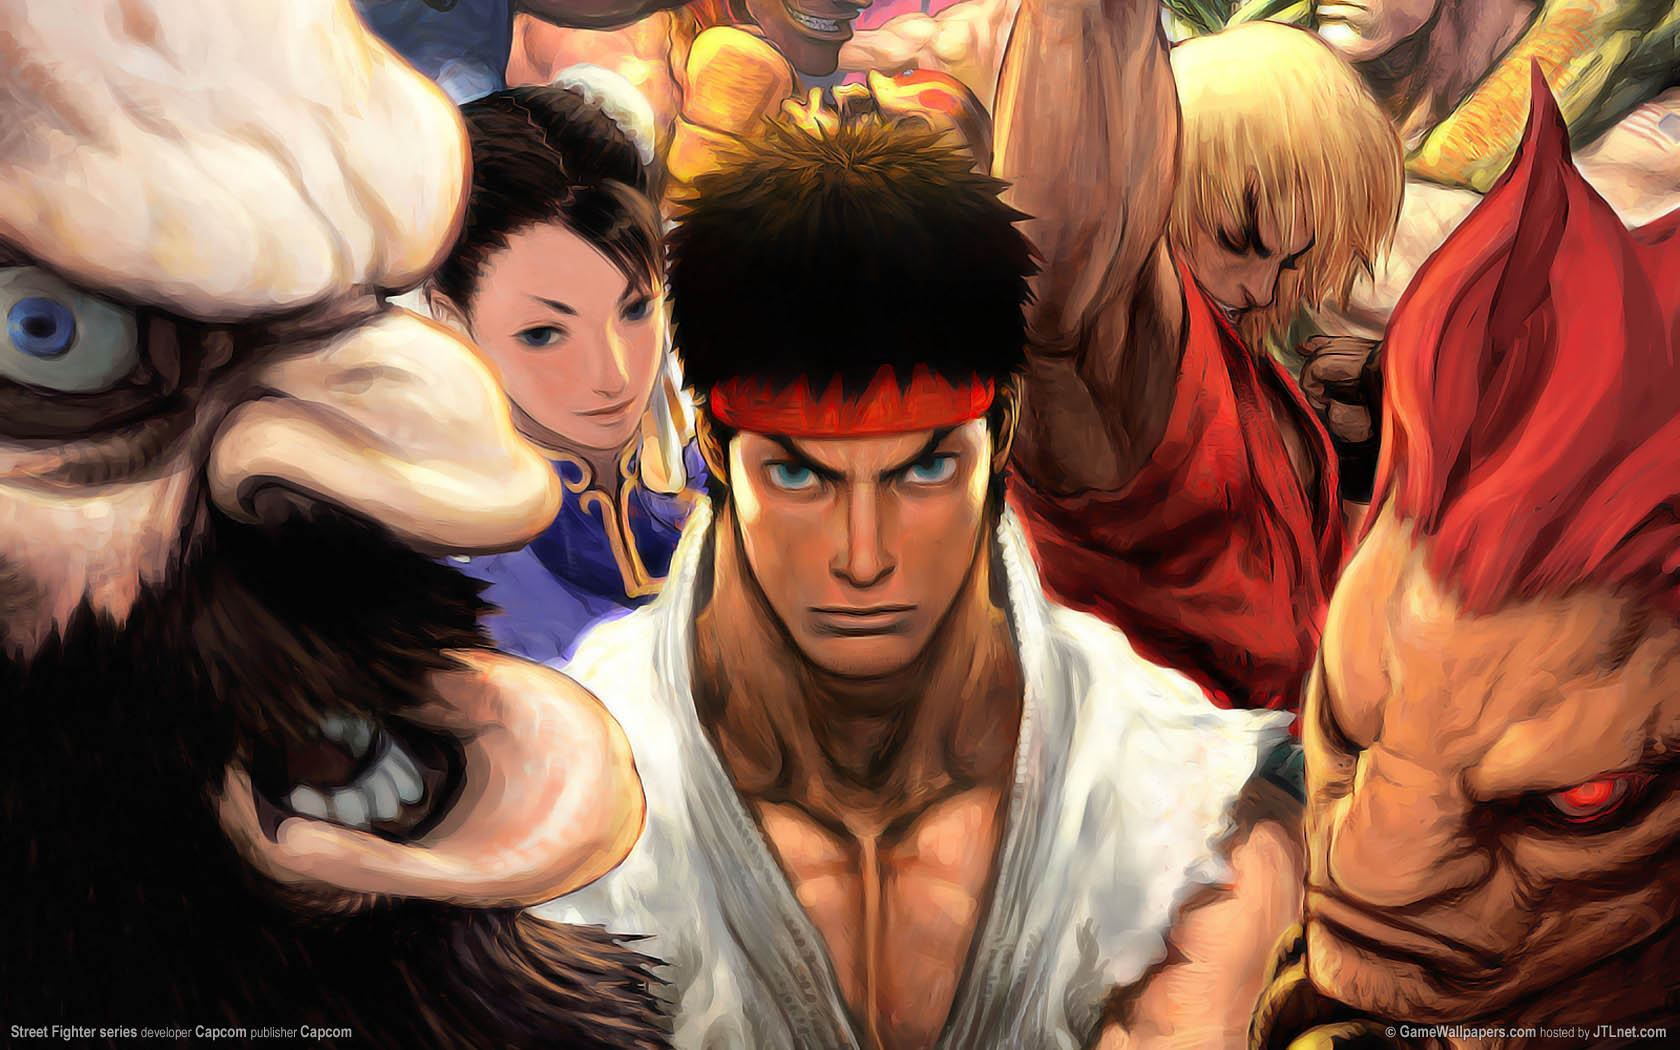 Обои Street Fighter series 1680x1050